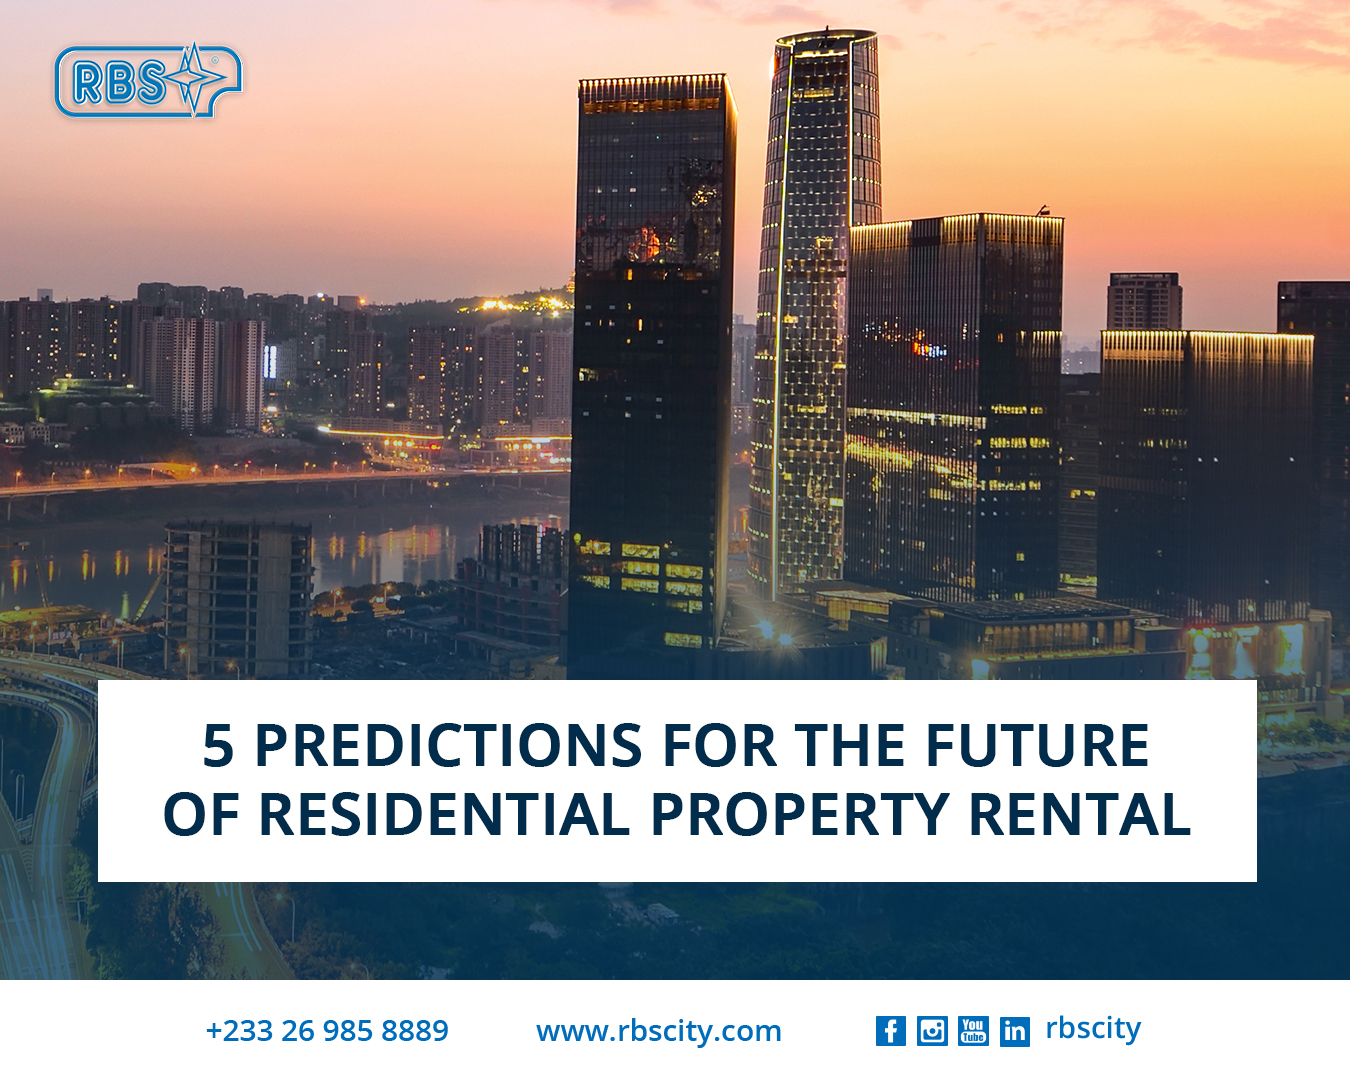 5 Predictions for the Future of Residential Property Rental